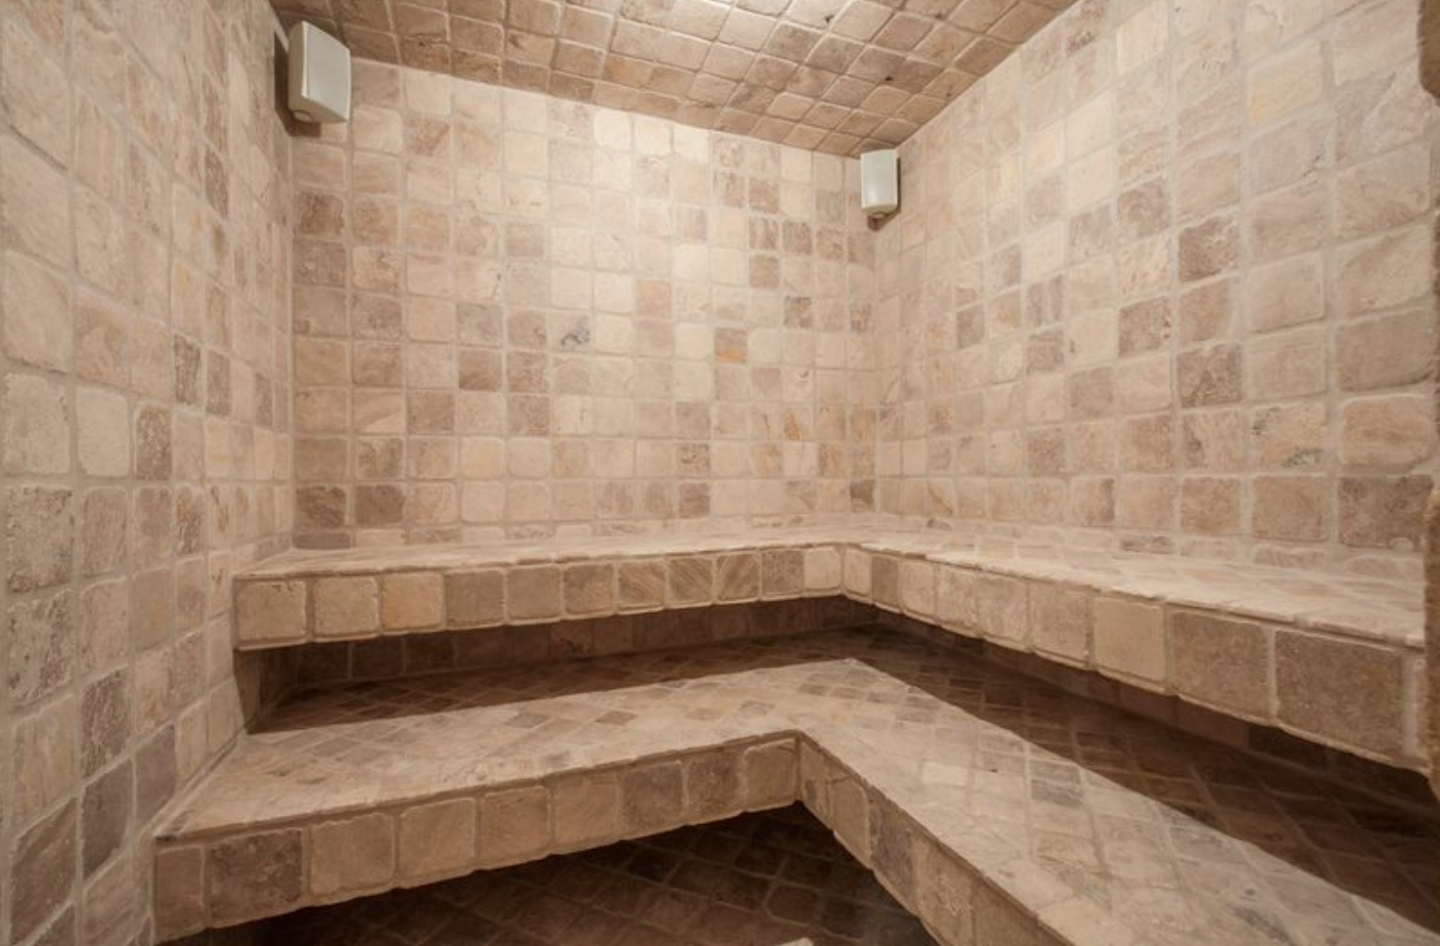 3468 Crest Court West has a dry sauna and steam room.